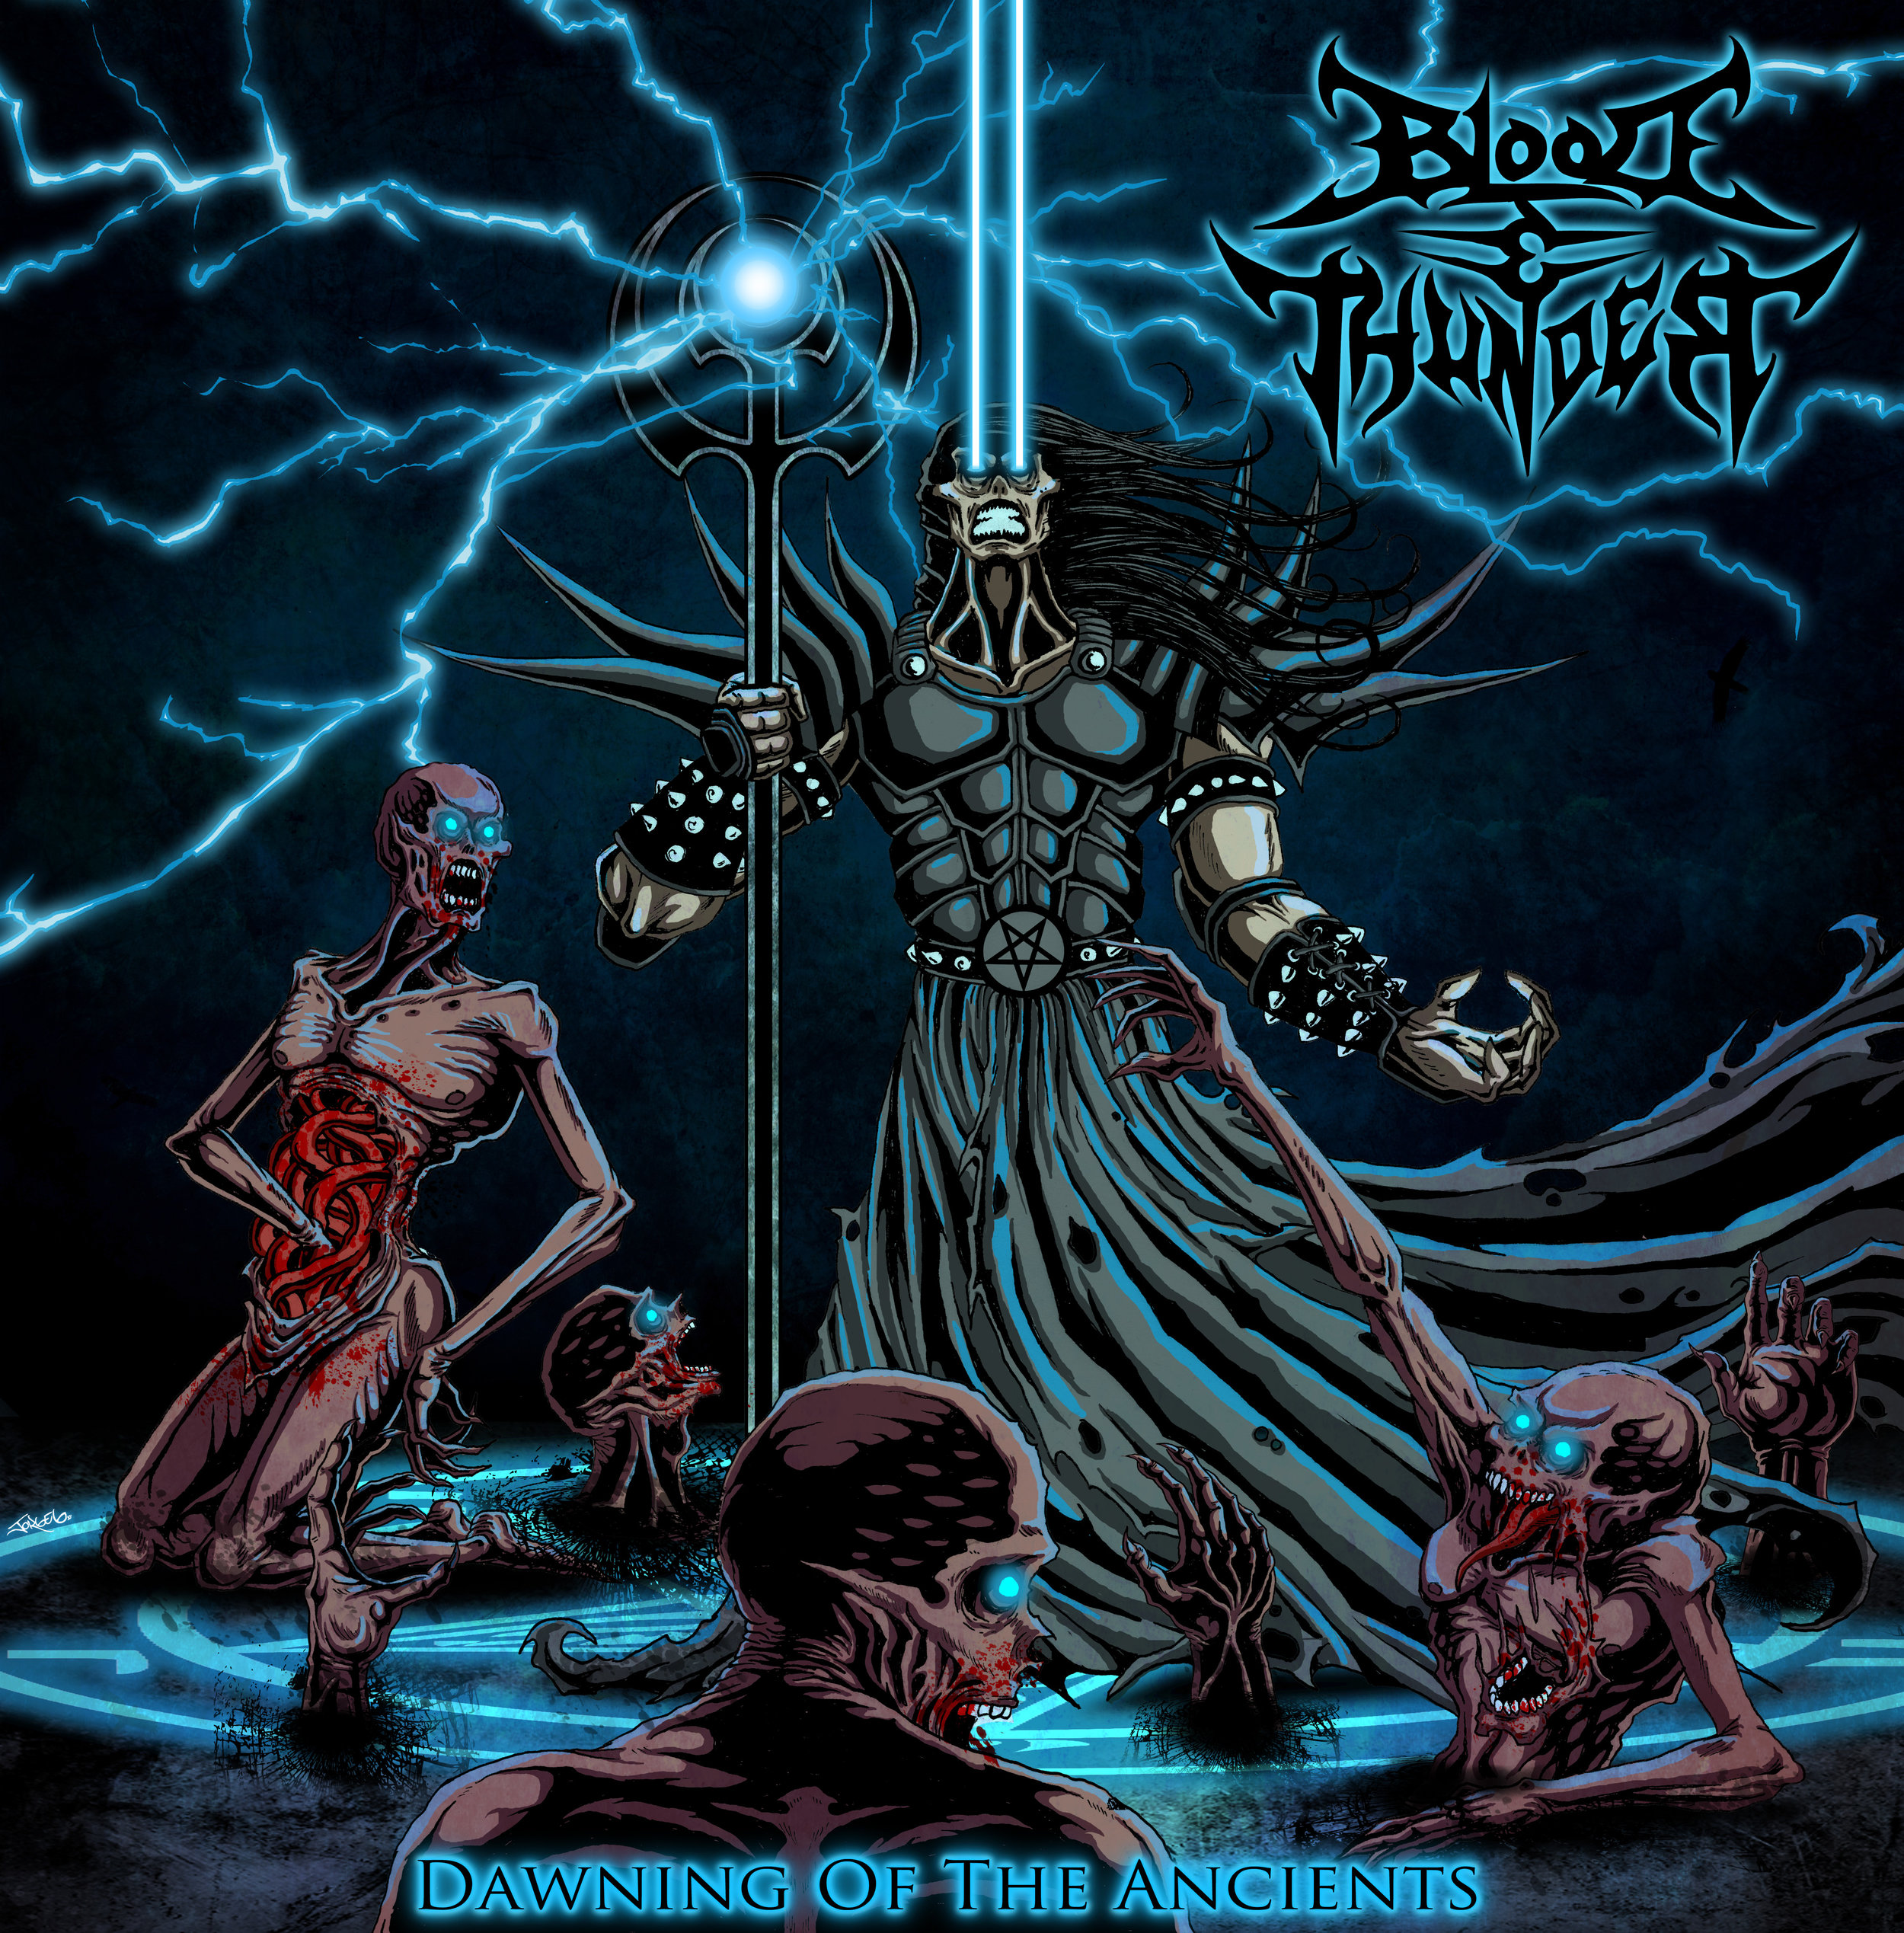 Dawning of the Ancients - 2011Track Listing:1. We Will Endure2. Cold Ones3. Children of the Sand Intro4. Children of the Sand5. Necrosis6. Mephistopheles7. Throwdown8. This Faceless Odyssey9. The Last Legacy